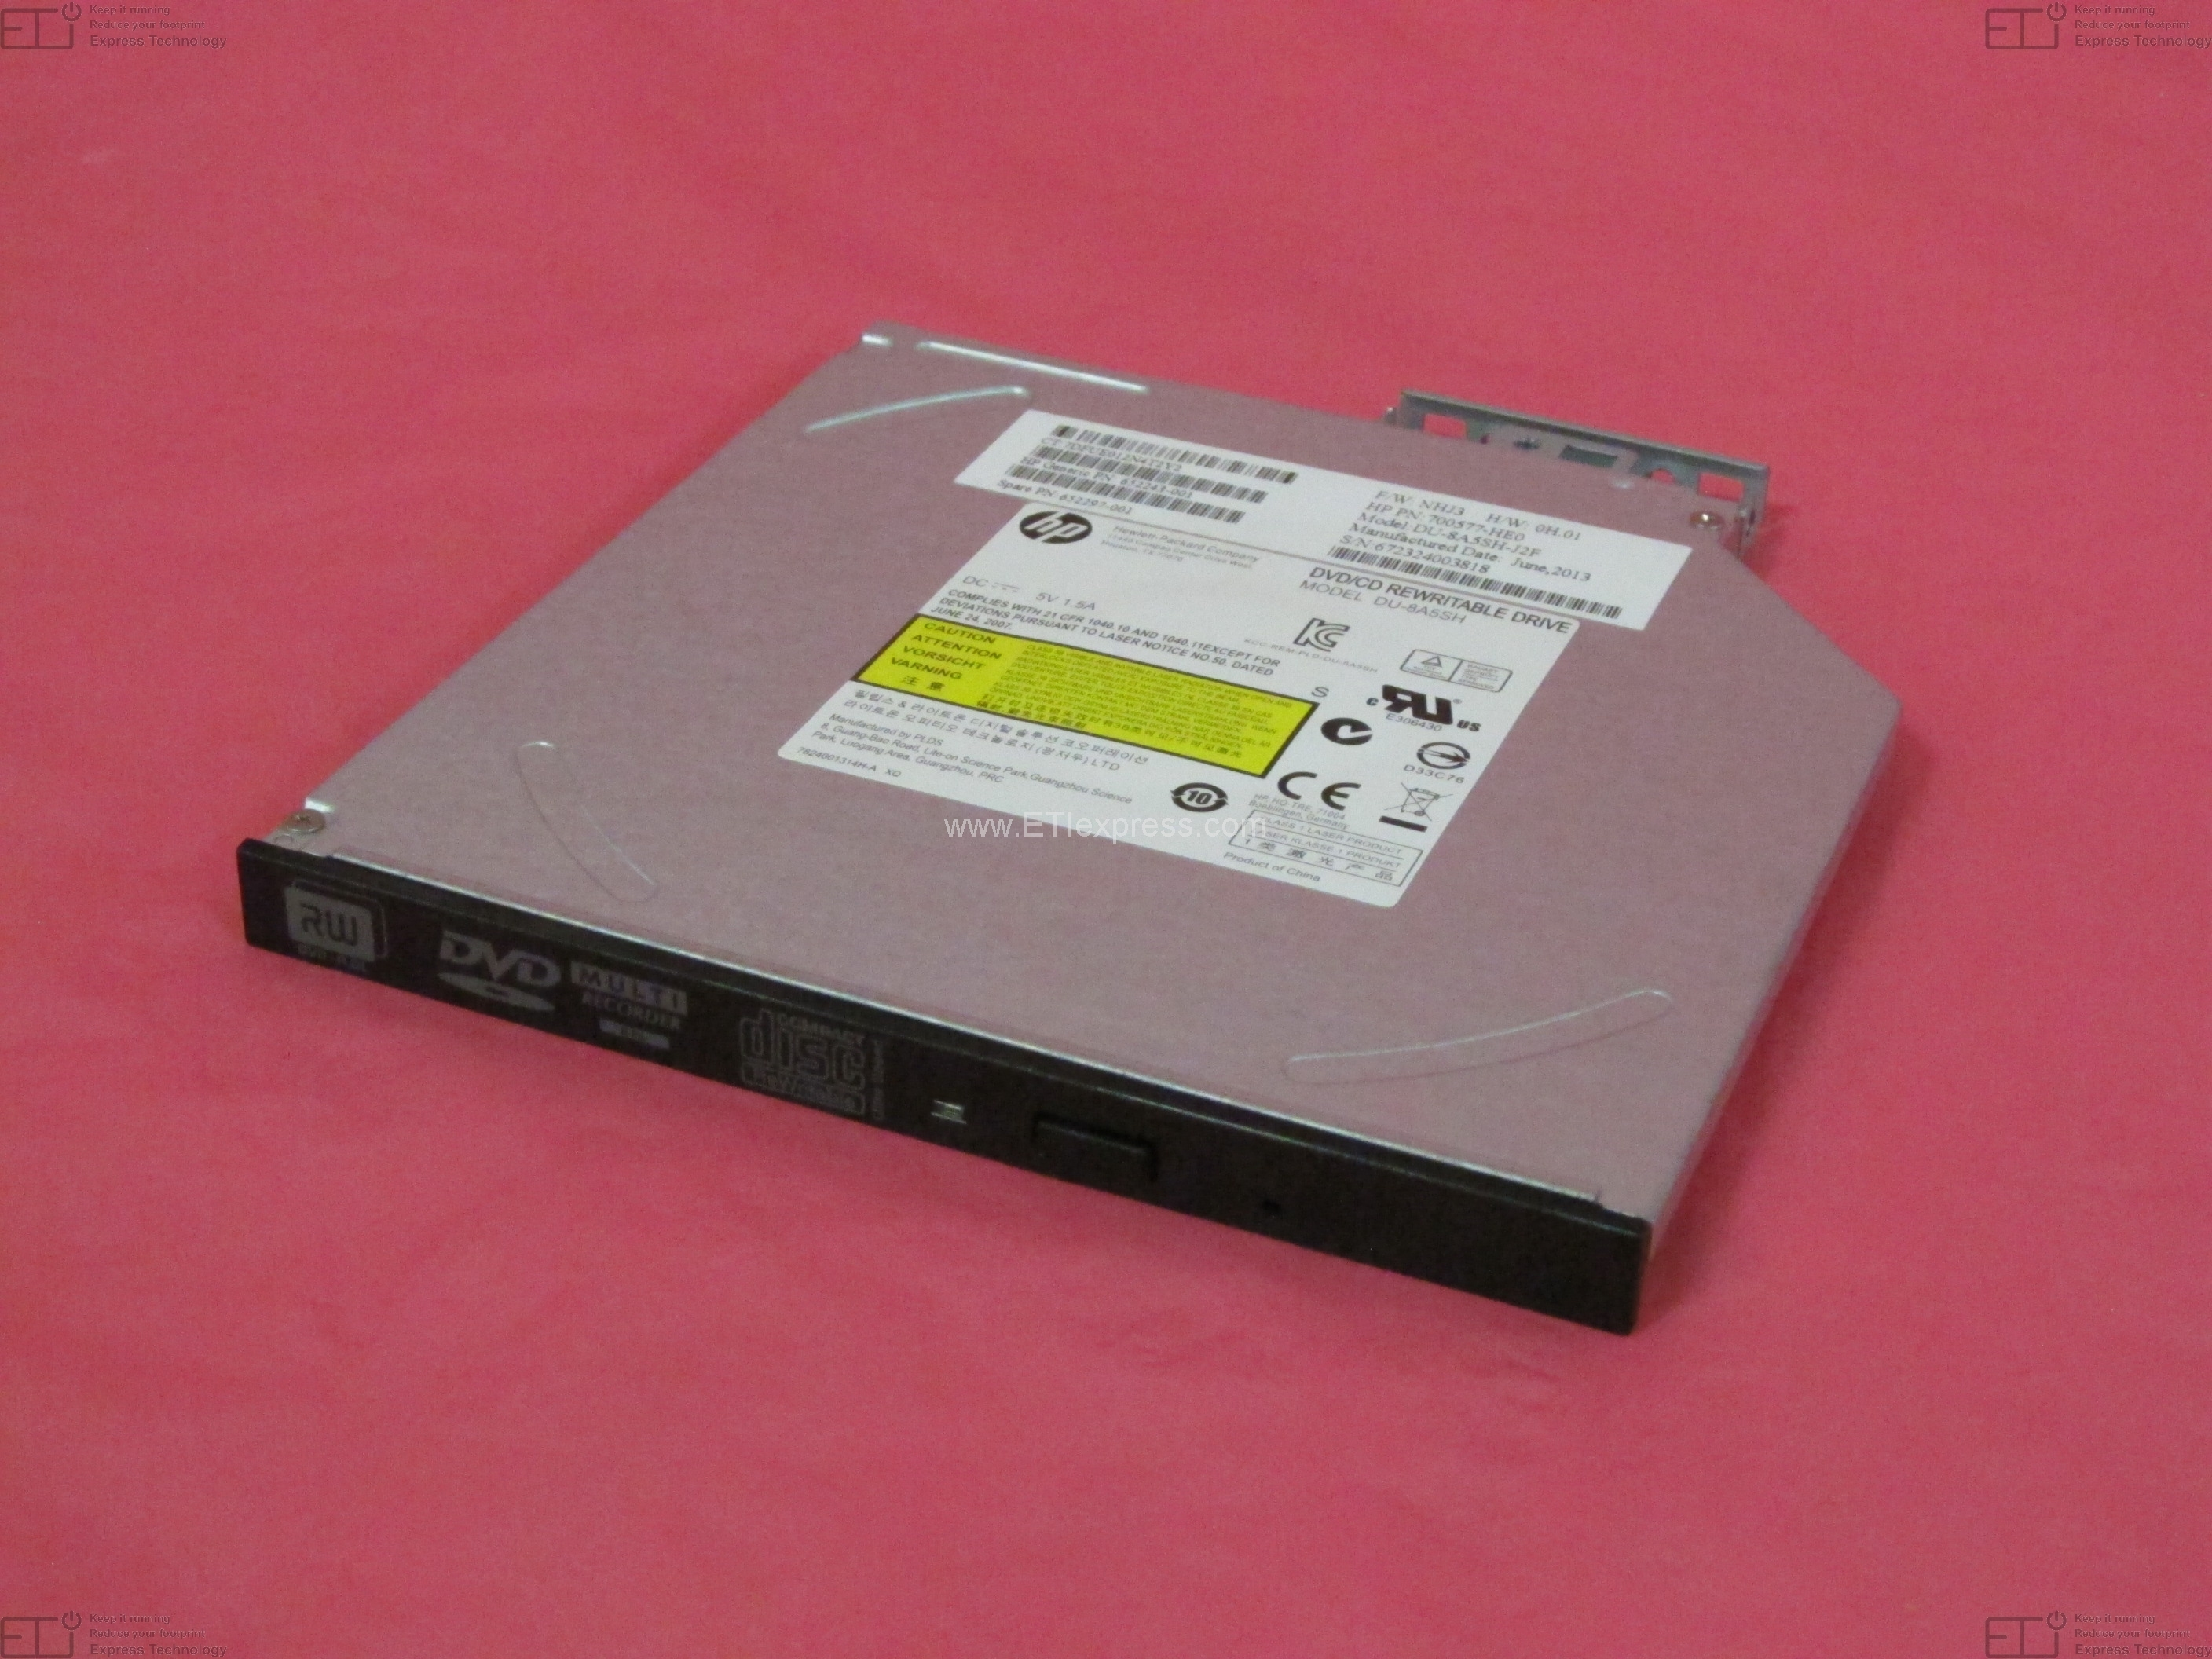 278026-001-ref Hp Refurbished 24x Ide Cd-rom